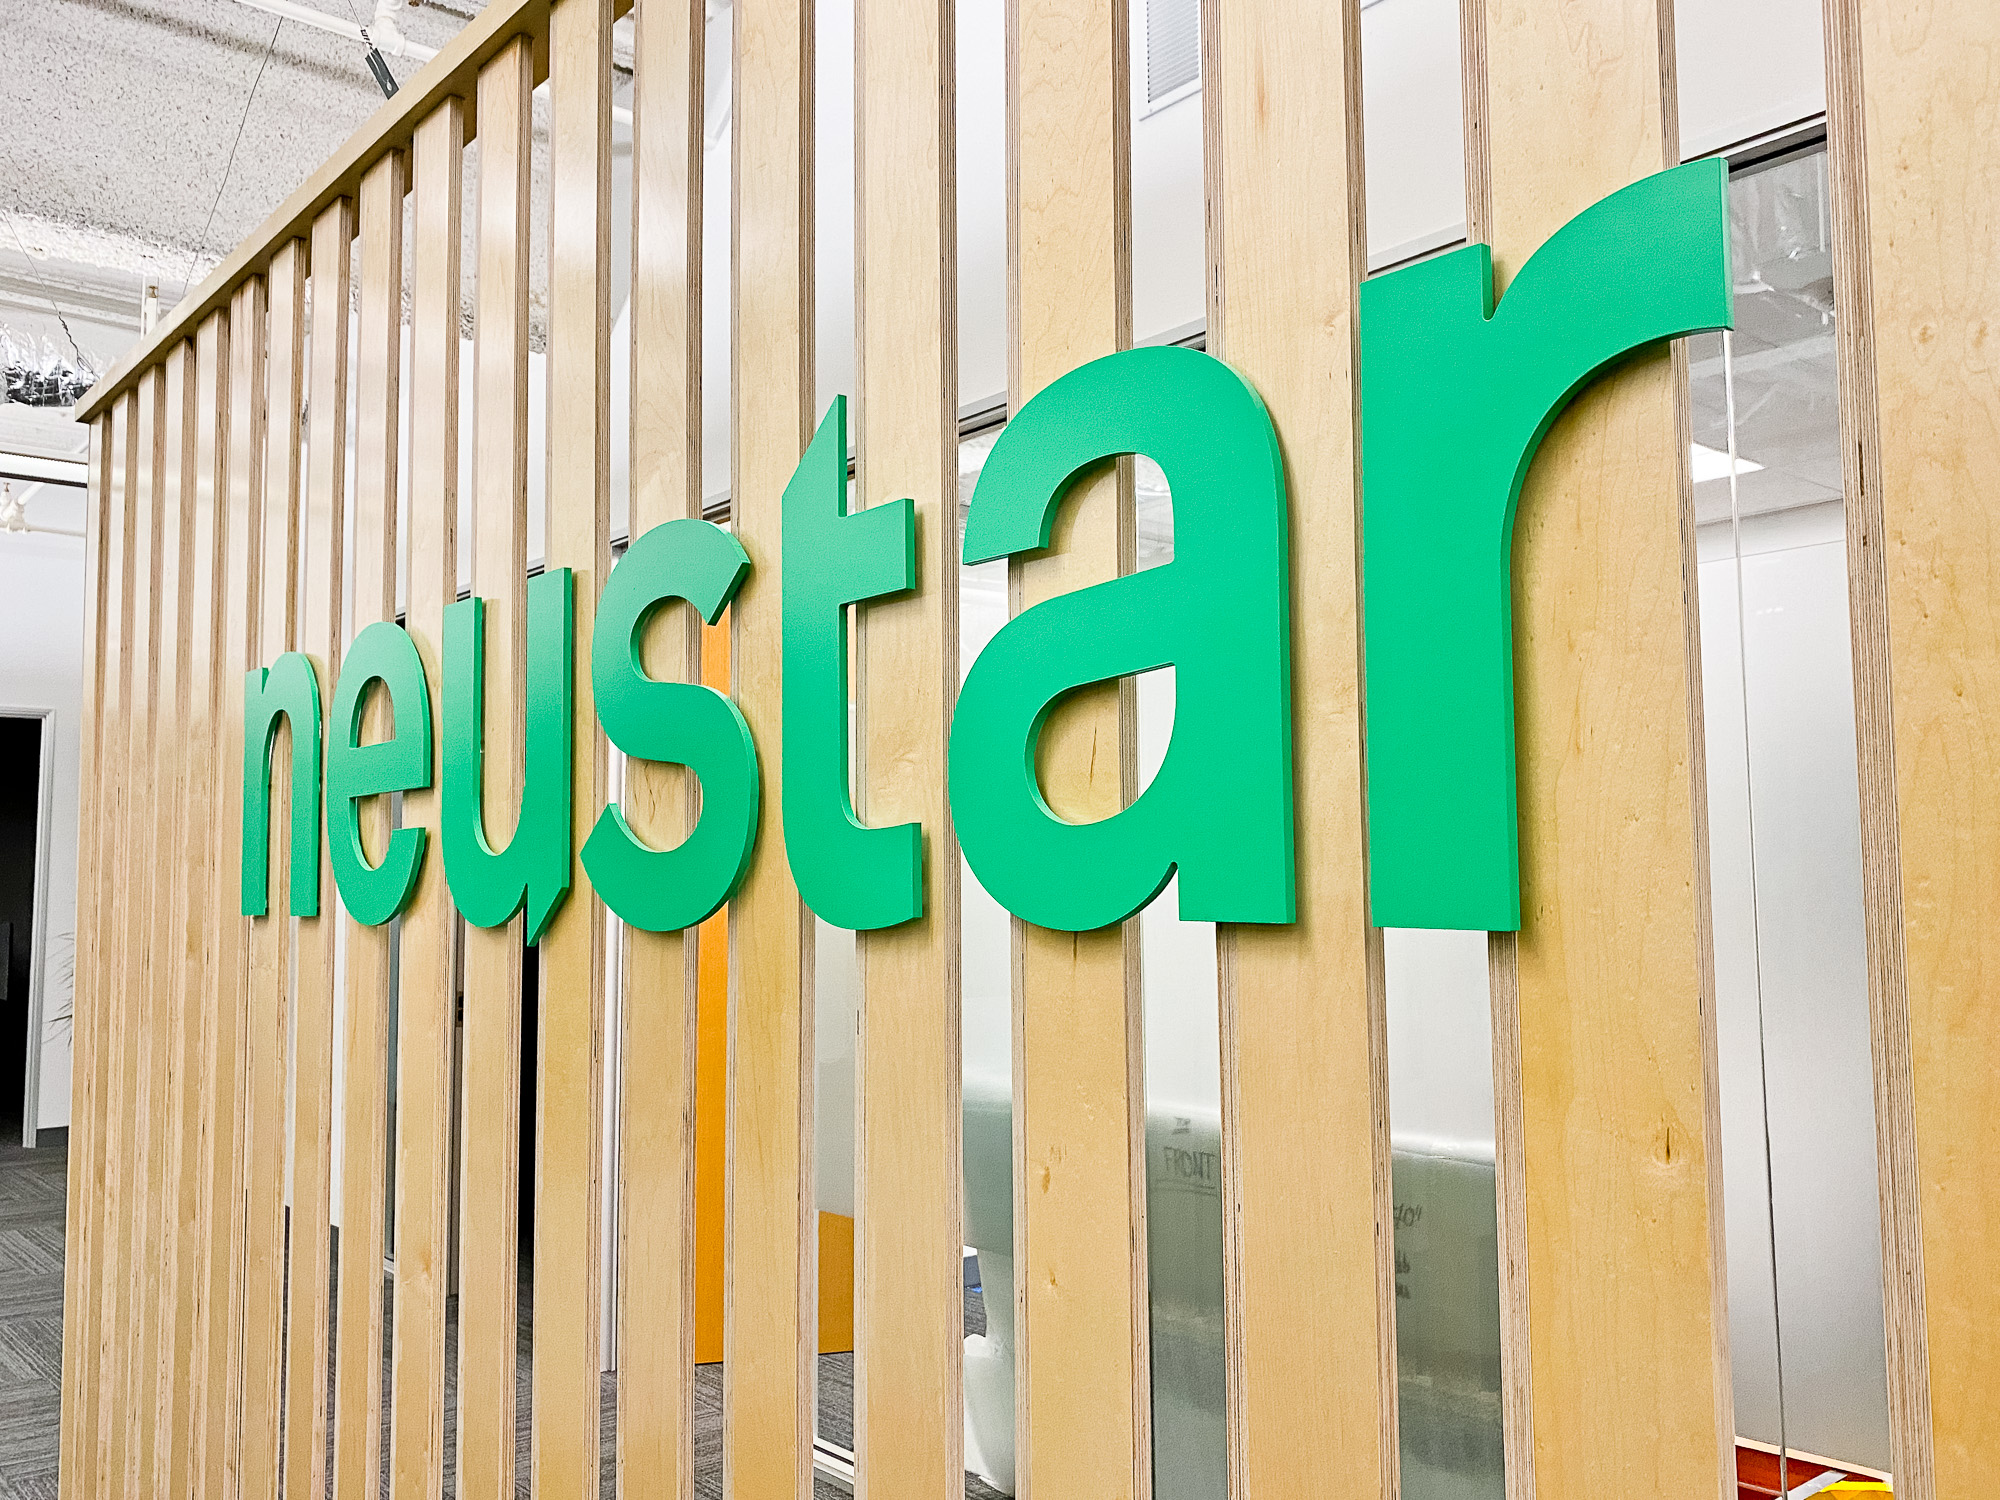 Wood slat dividing wall wiht green logo for lobby/reception desk area at the San Francisco office of Neustar, an American technology company that provides real-time information and analytics.